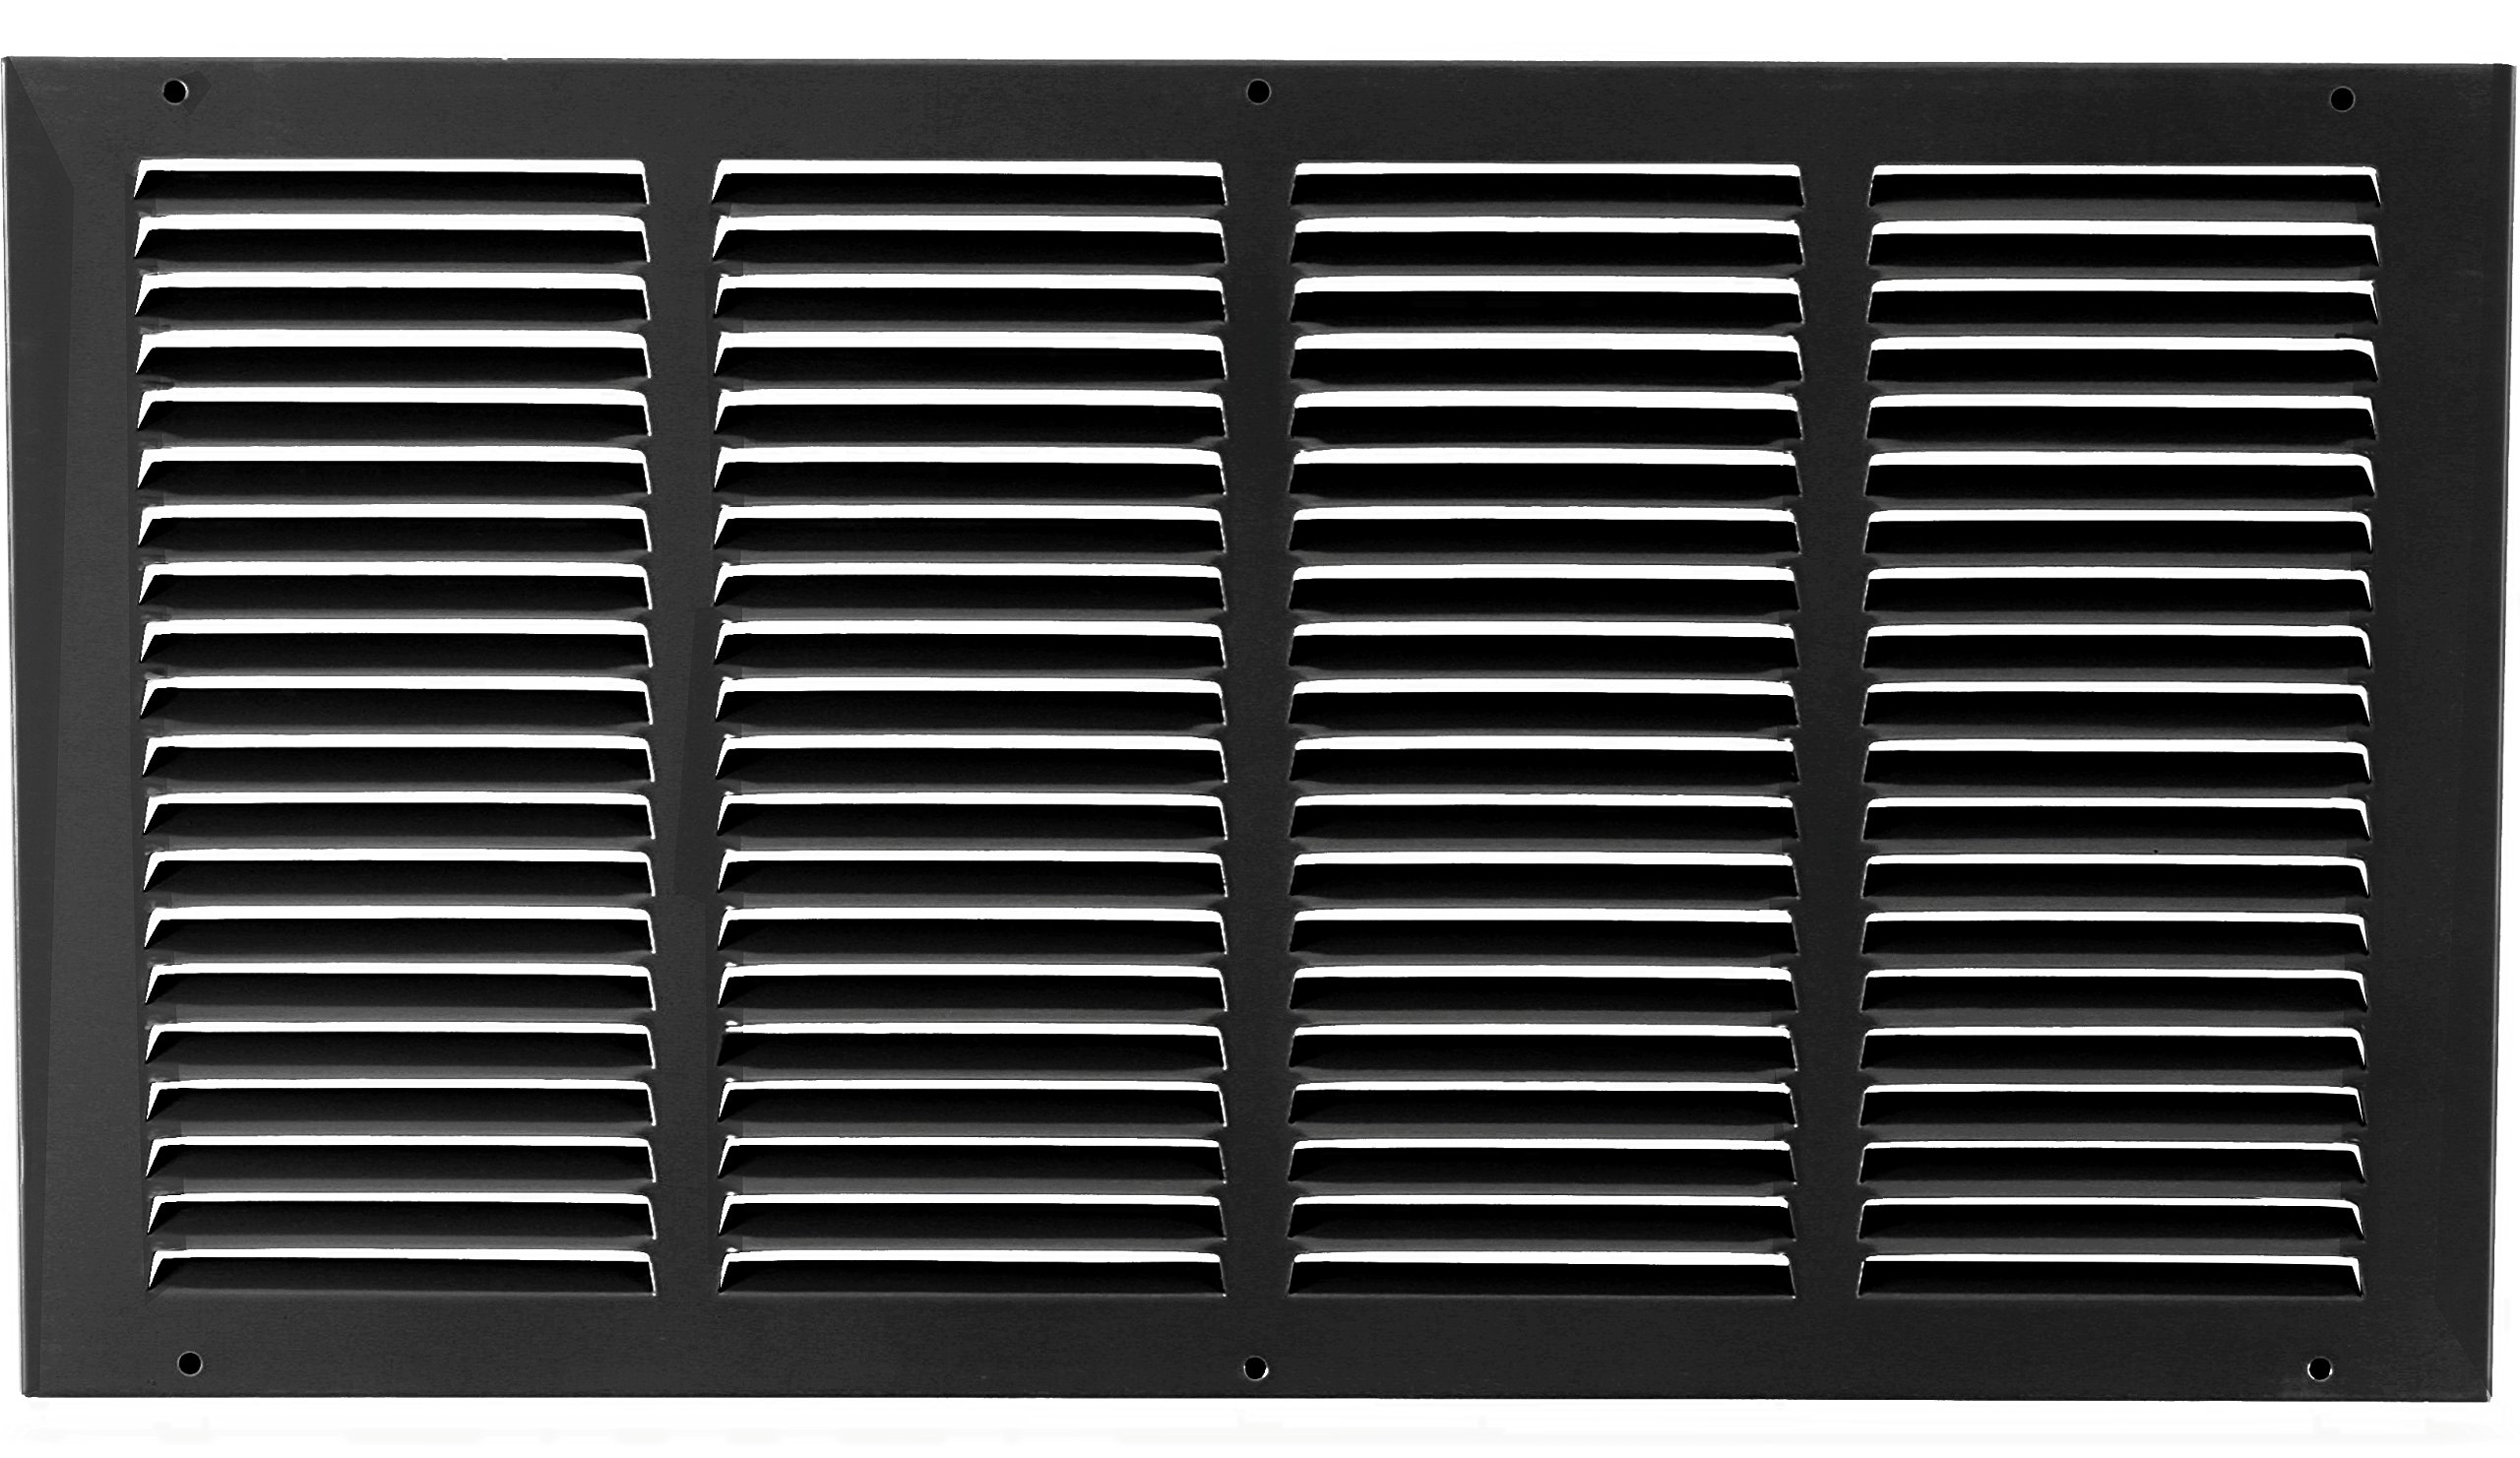 24''w X 10''h Steel Return Air Grilles - Sidewall and Cieling - HVAC DUCT COVER - Black [Outer Dimensions: 25.75''w X 11.75''h]